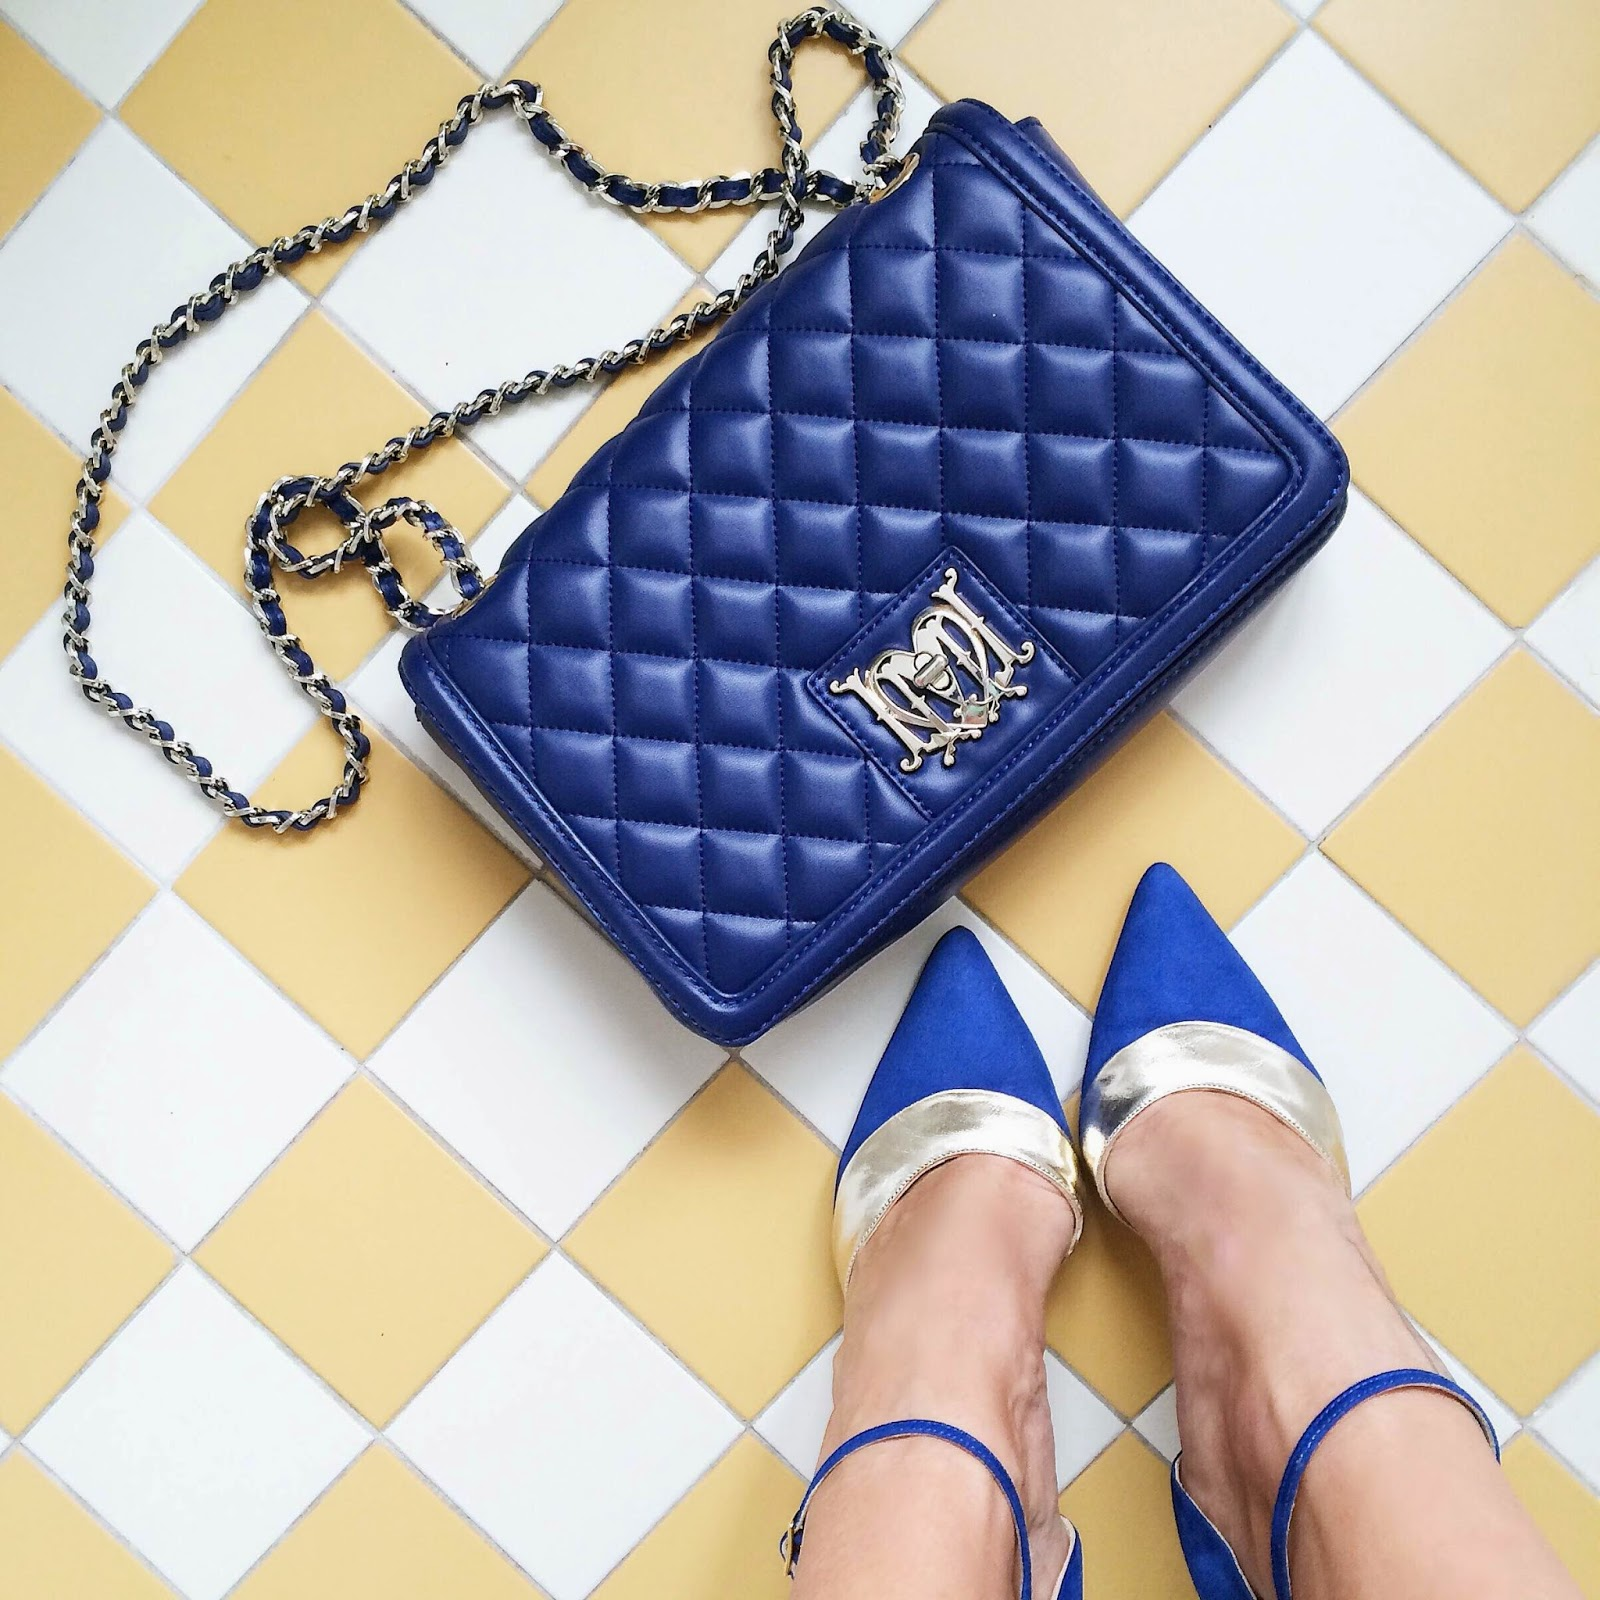 moshcino-blue-quilted-bag-george-j-love-blue-gold-stiletto-heels